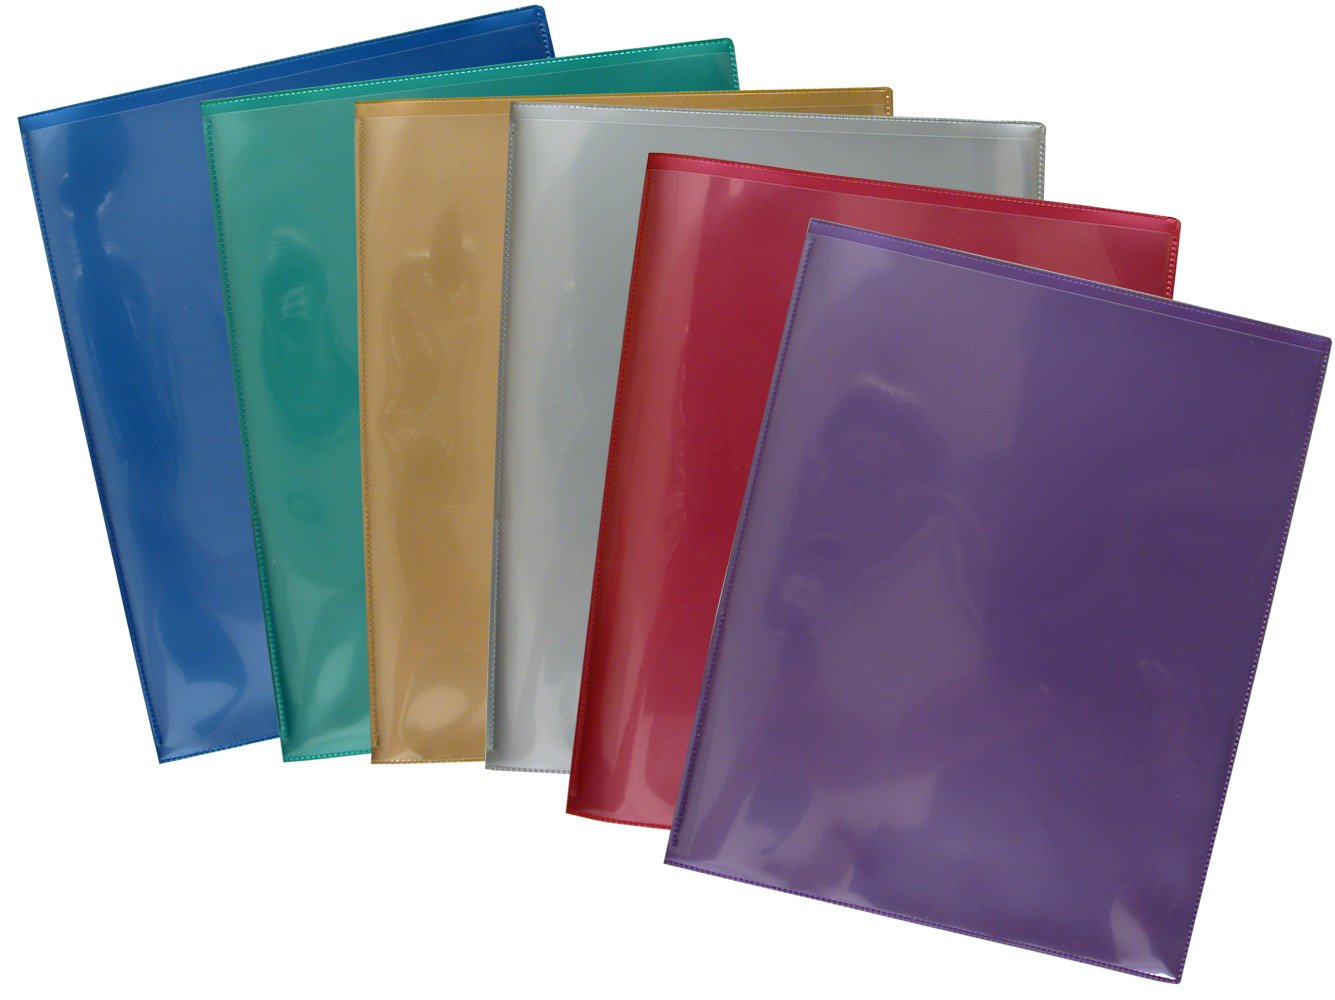 StoreSMART - Plastic Archival Twin Pocket Folders - Metallic Colors 6-pack: 1 of each color - For Business, School, & Home - R900MCP6